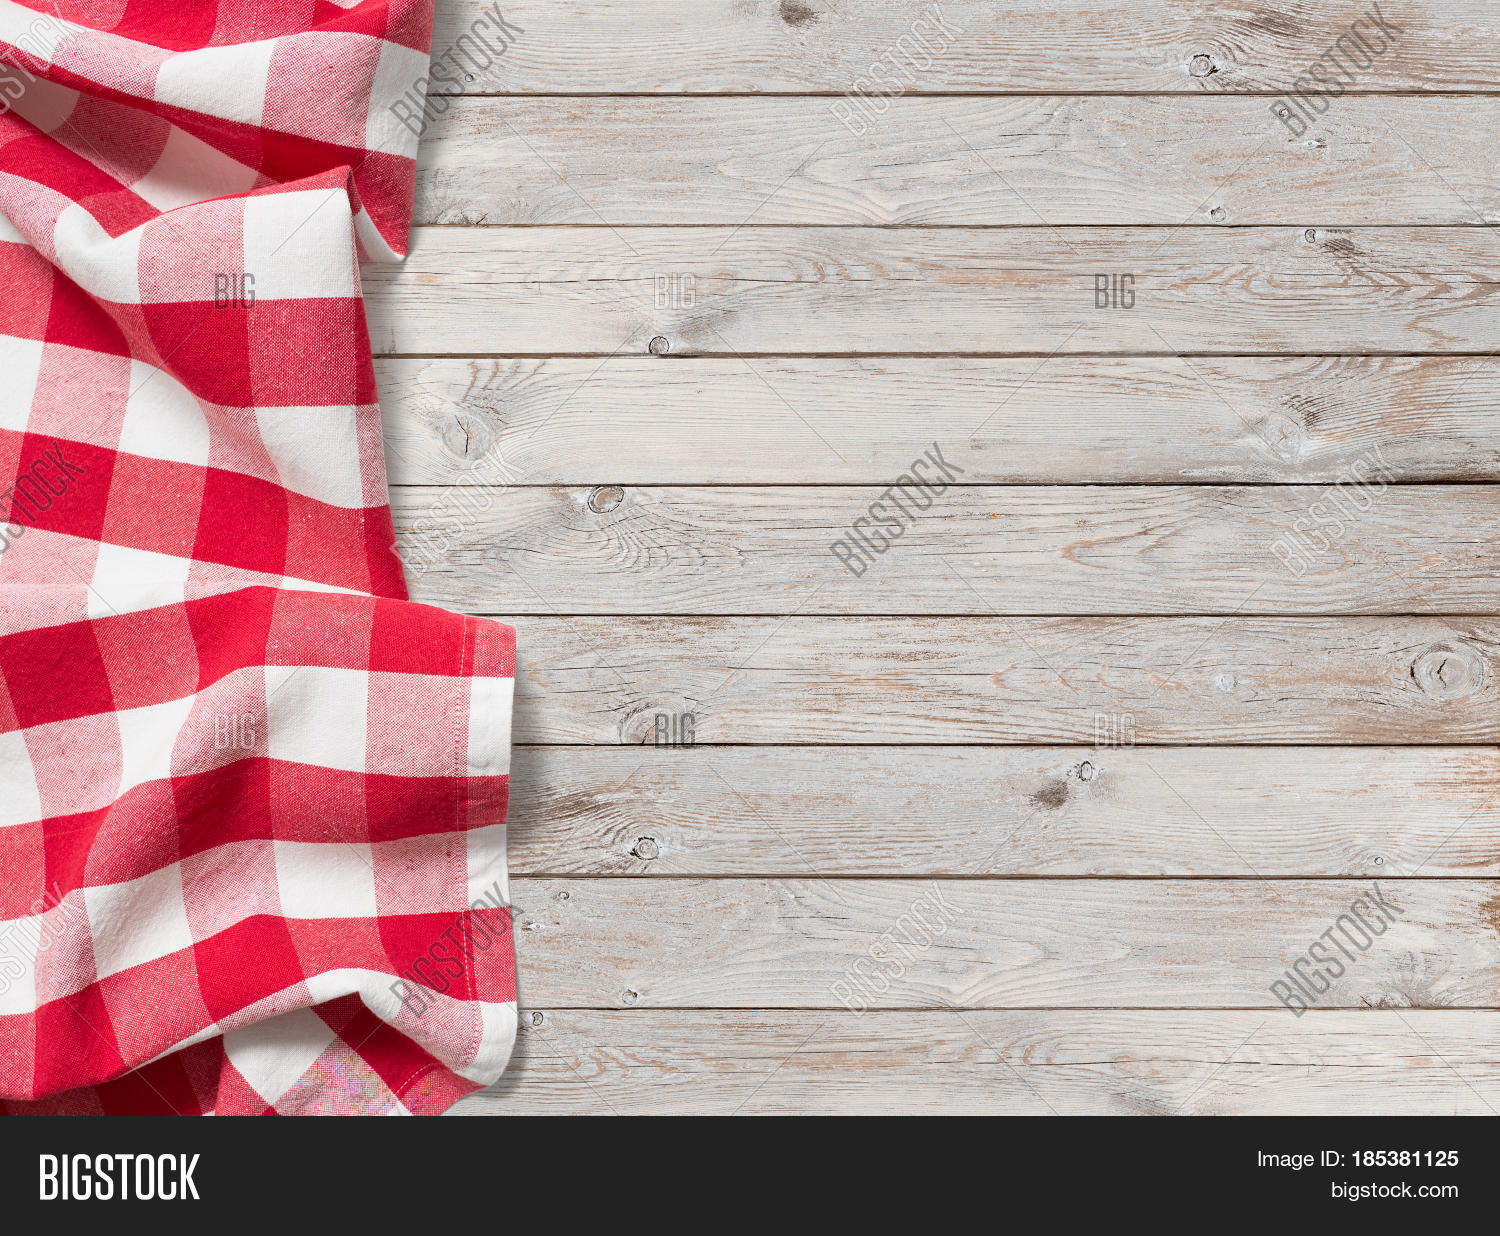 Red Picnic Tablecloth Image Amp Photo Free Trial Bigstock